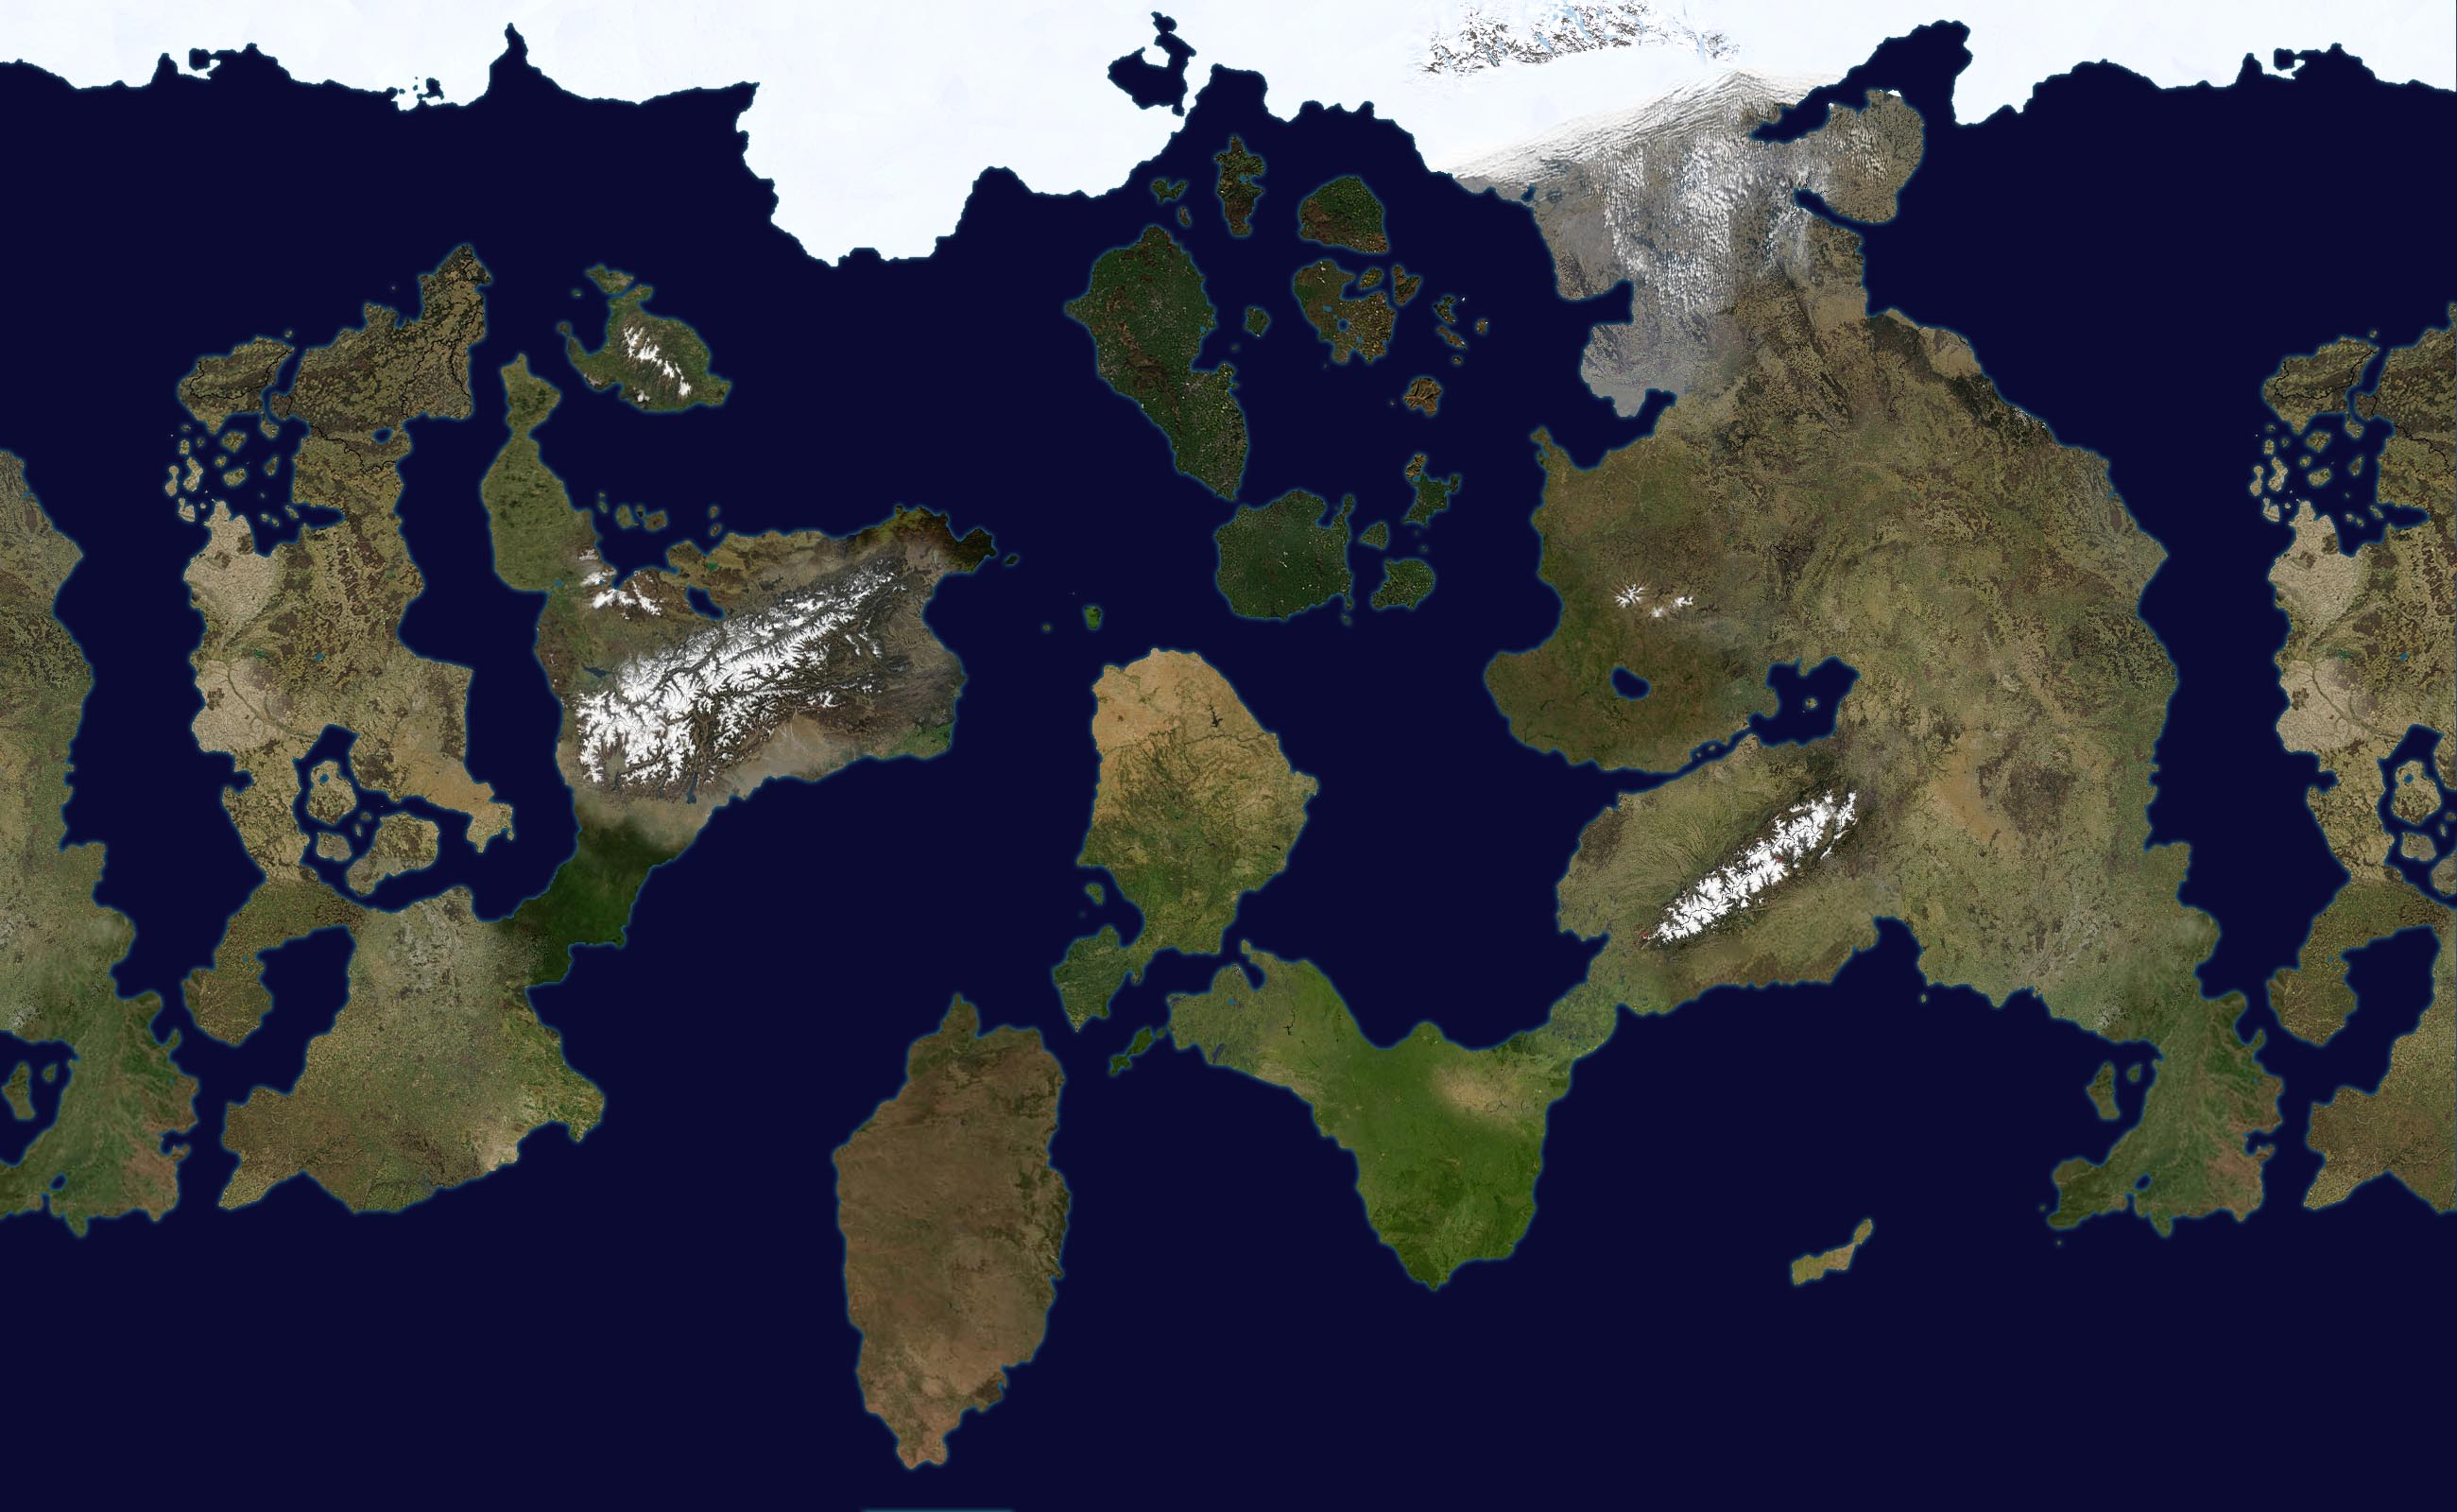 Fantasy World - Geographical Map by sheep-militia on DeviantArt